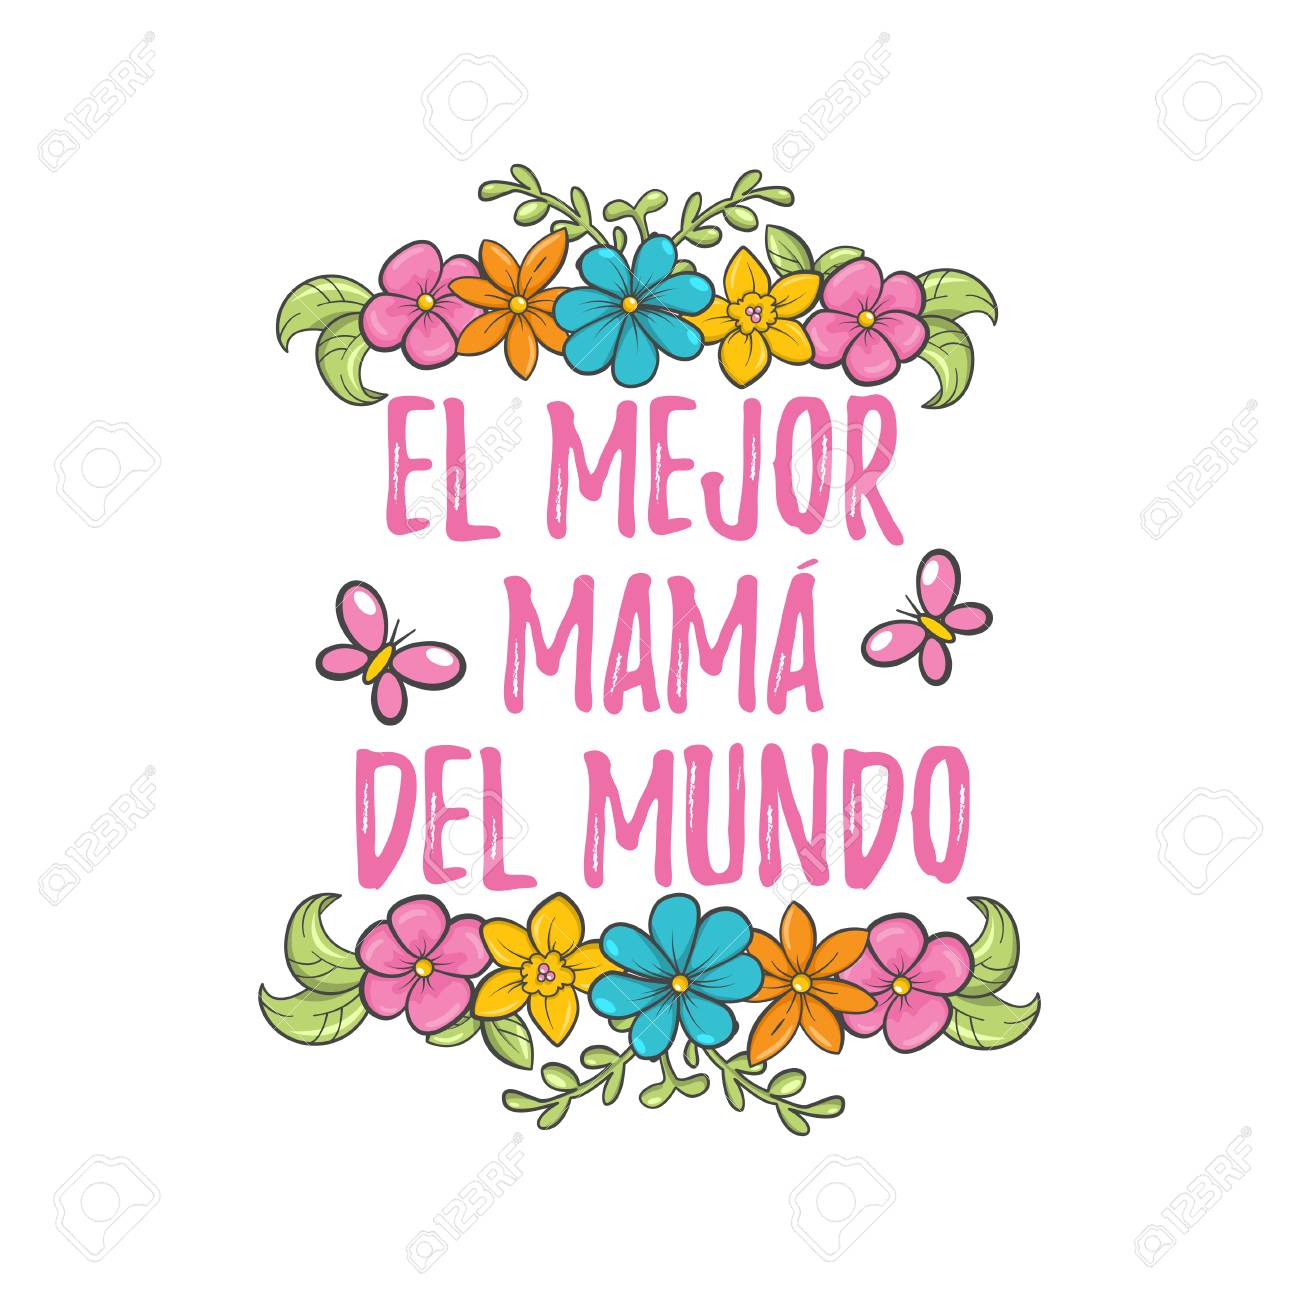 The Best Mom In The World Spanish Mother Day Greeting Sweet